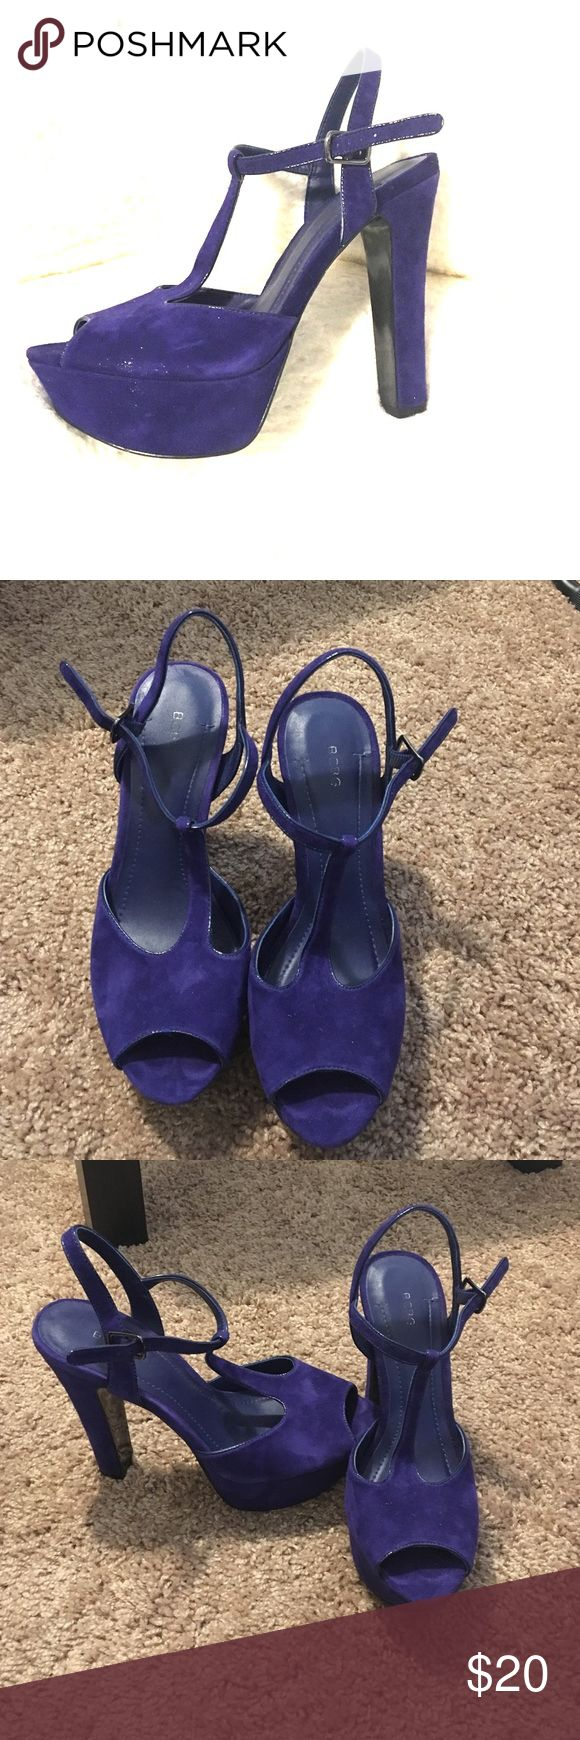 BCBG platform navy heels Super comfortable platform navy heels with a leather upper. Feels like velvet. There is some wear in the form of glitter on the side of the shoe. Otherwise, very well kept. BCBGeneration Shoes Heels